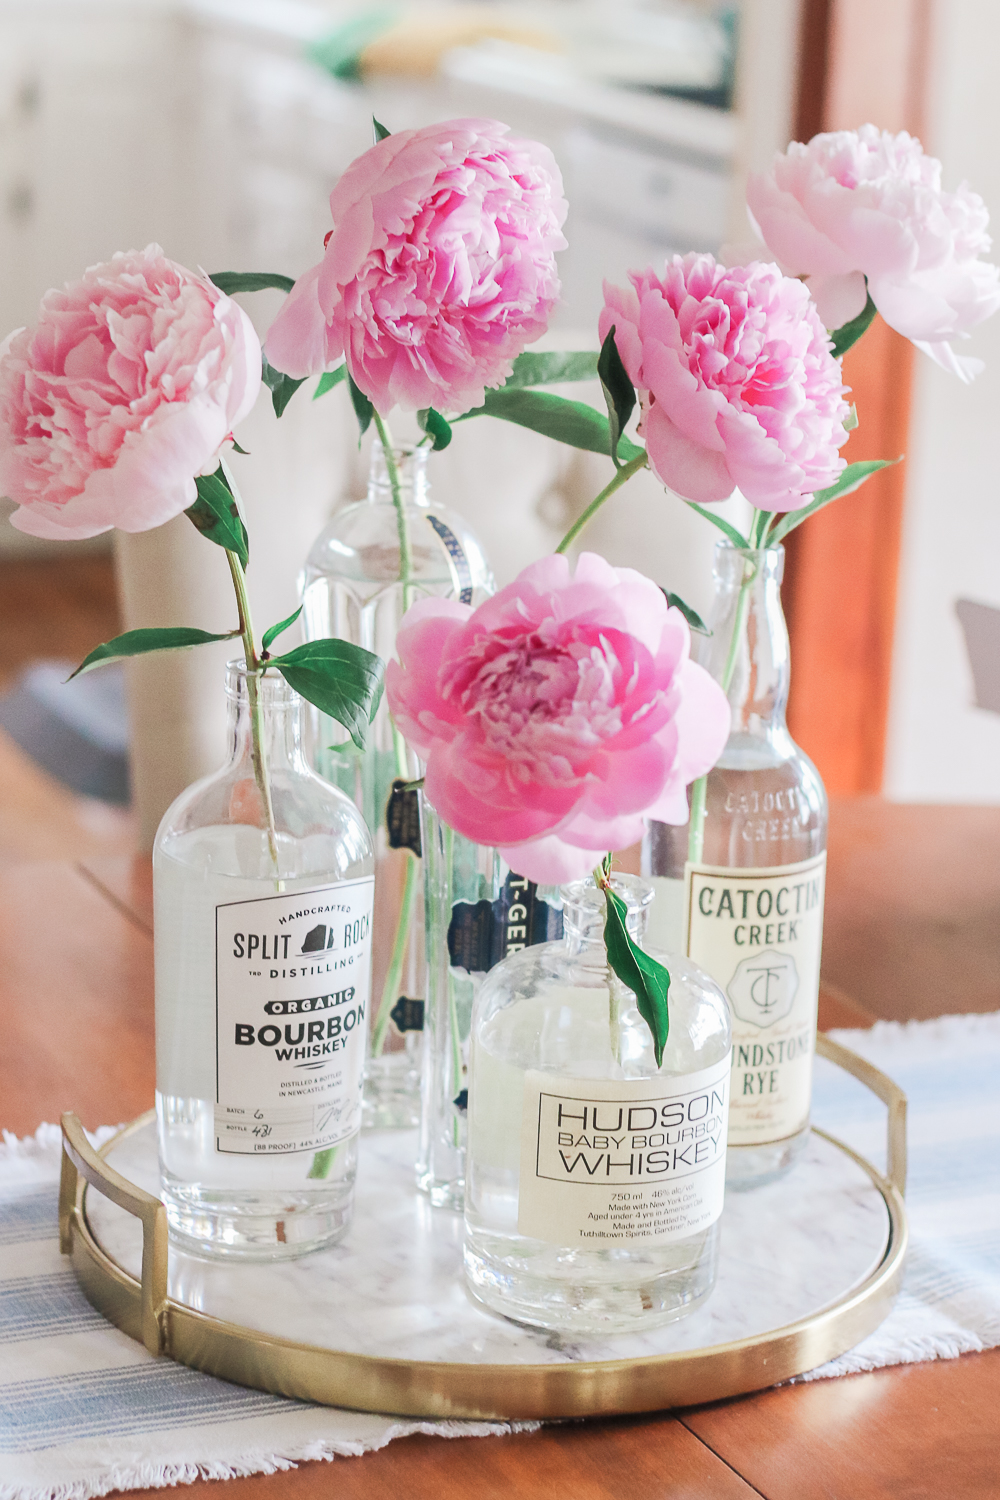 DIY Peony Centerpiece by popular southern lifestyle blogger Stephanie Ziajka on Diary of a Debutante, rustic centerpiece idea with peonies, minimalist rustic flower arrangement with peonies, cheap wedding table centerpieces, rustic home decor ideas